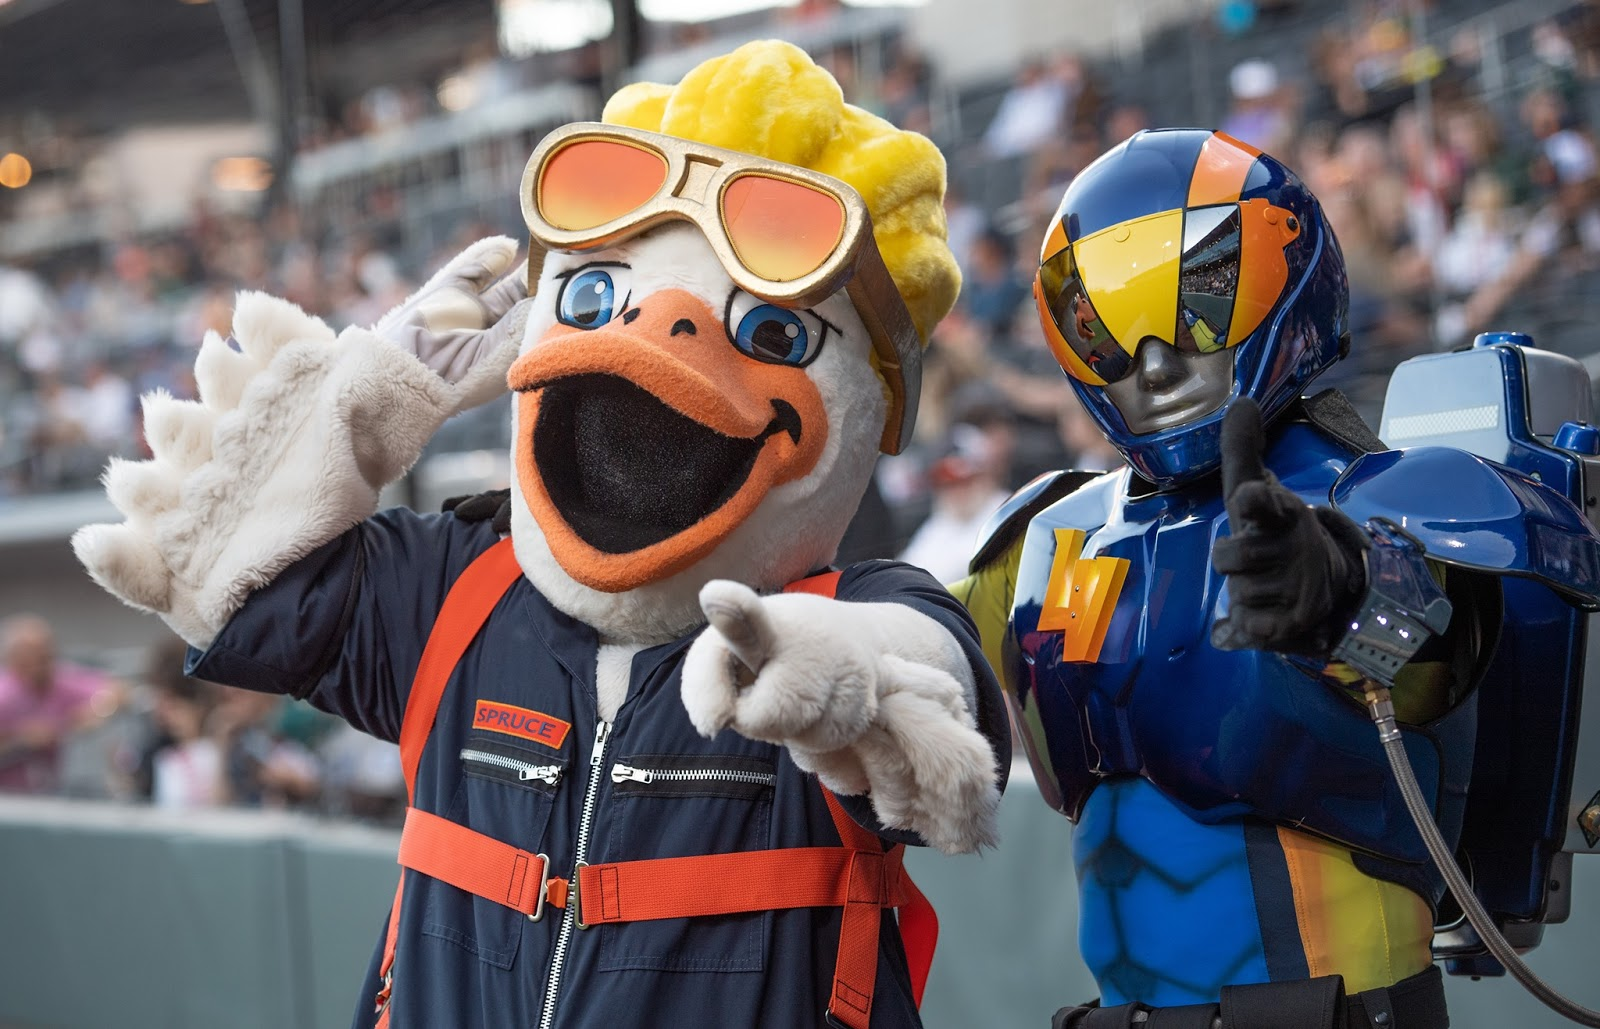 Two costumed characters stand on the Las Vegas ballpark baseball field and point to the camera. Spruce the Goose is dressed in a dark blue and orange air pilot's jumpsuit. He is using one hand to point at the camera and the other to lift his large orange glasses to reveal his bright blue eyes. The character to the right is The Aviator who is in a blue, yellow and orange costume pointing at the camera. He wears a reflective helmet and a parachute back on his back.